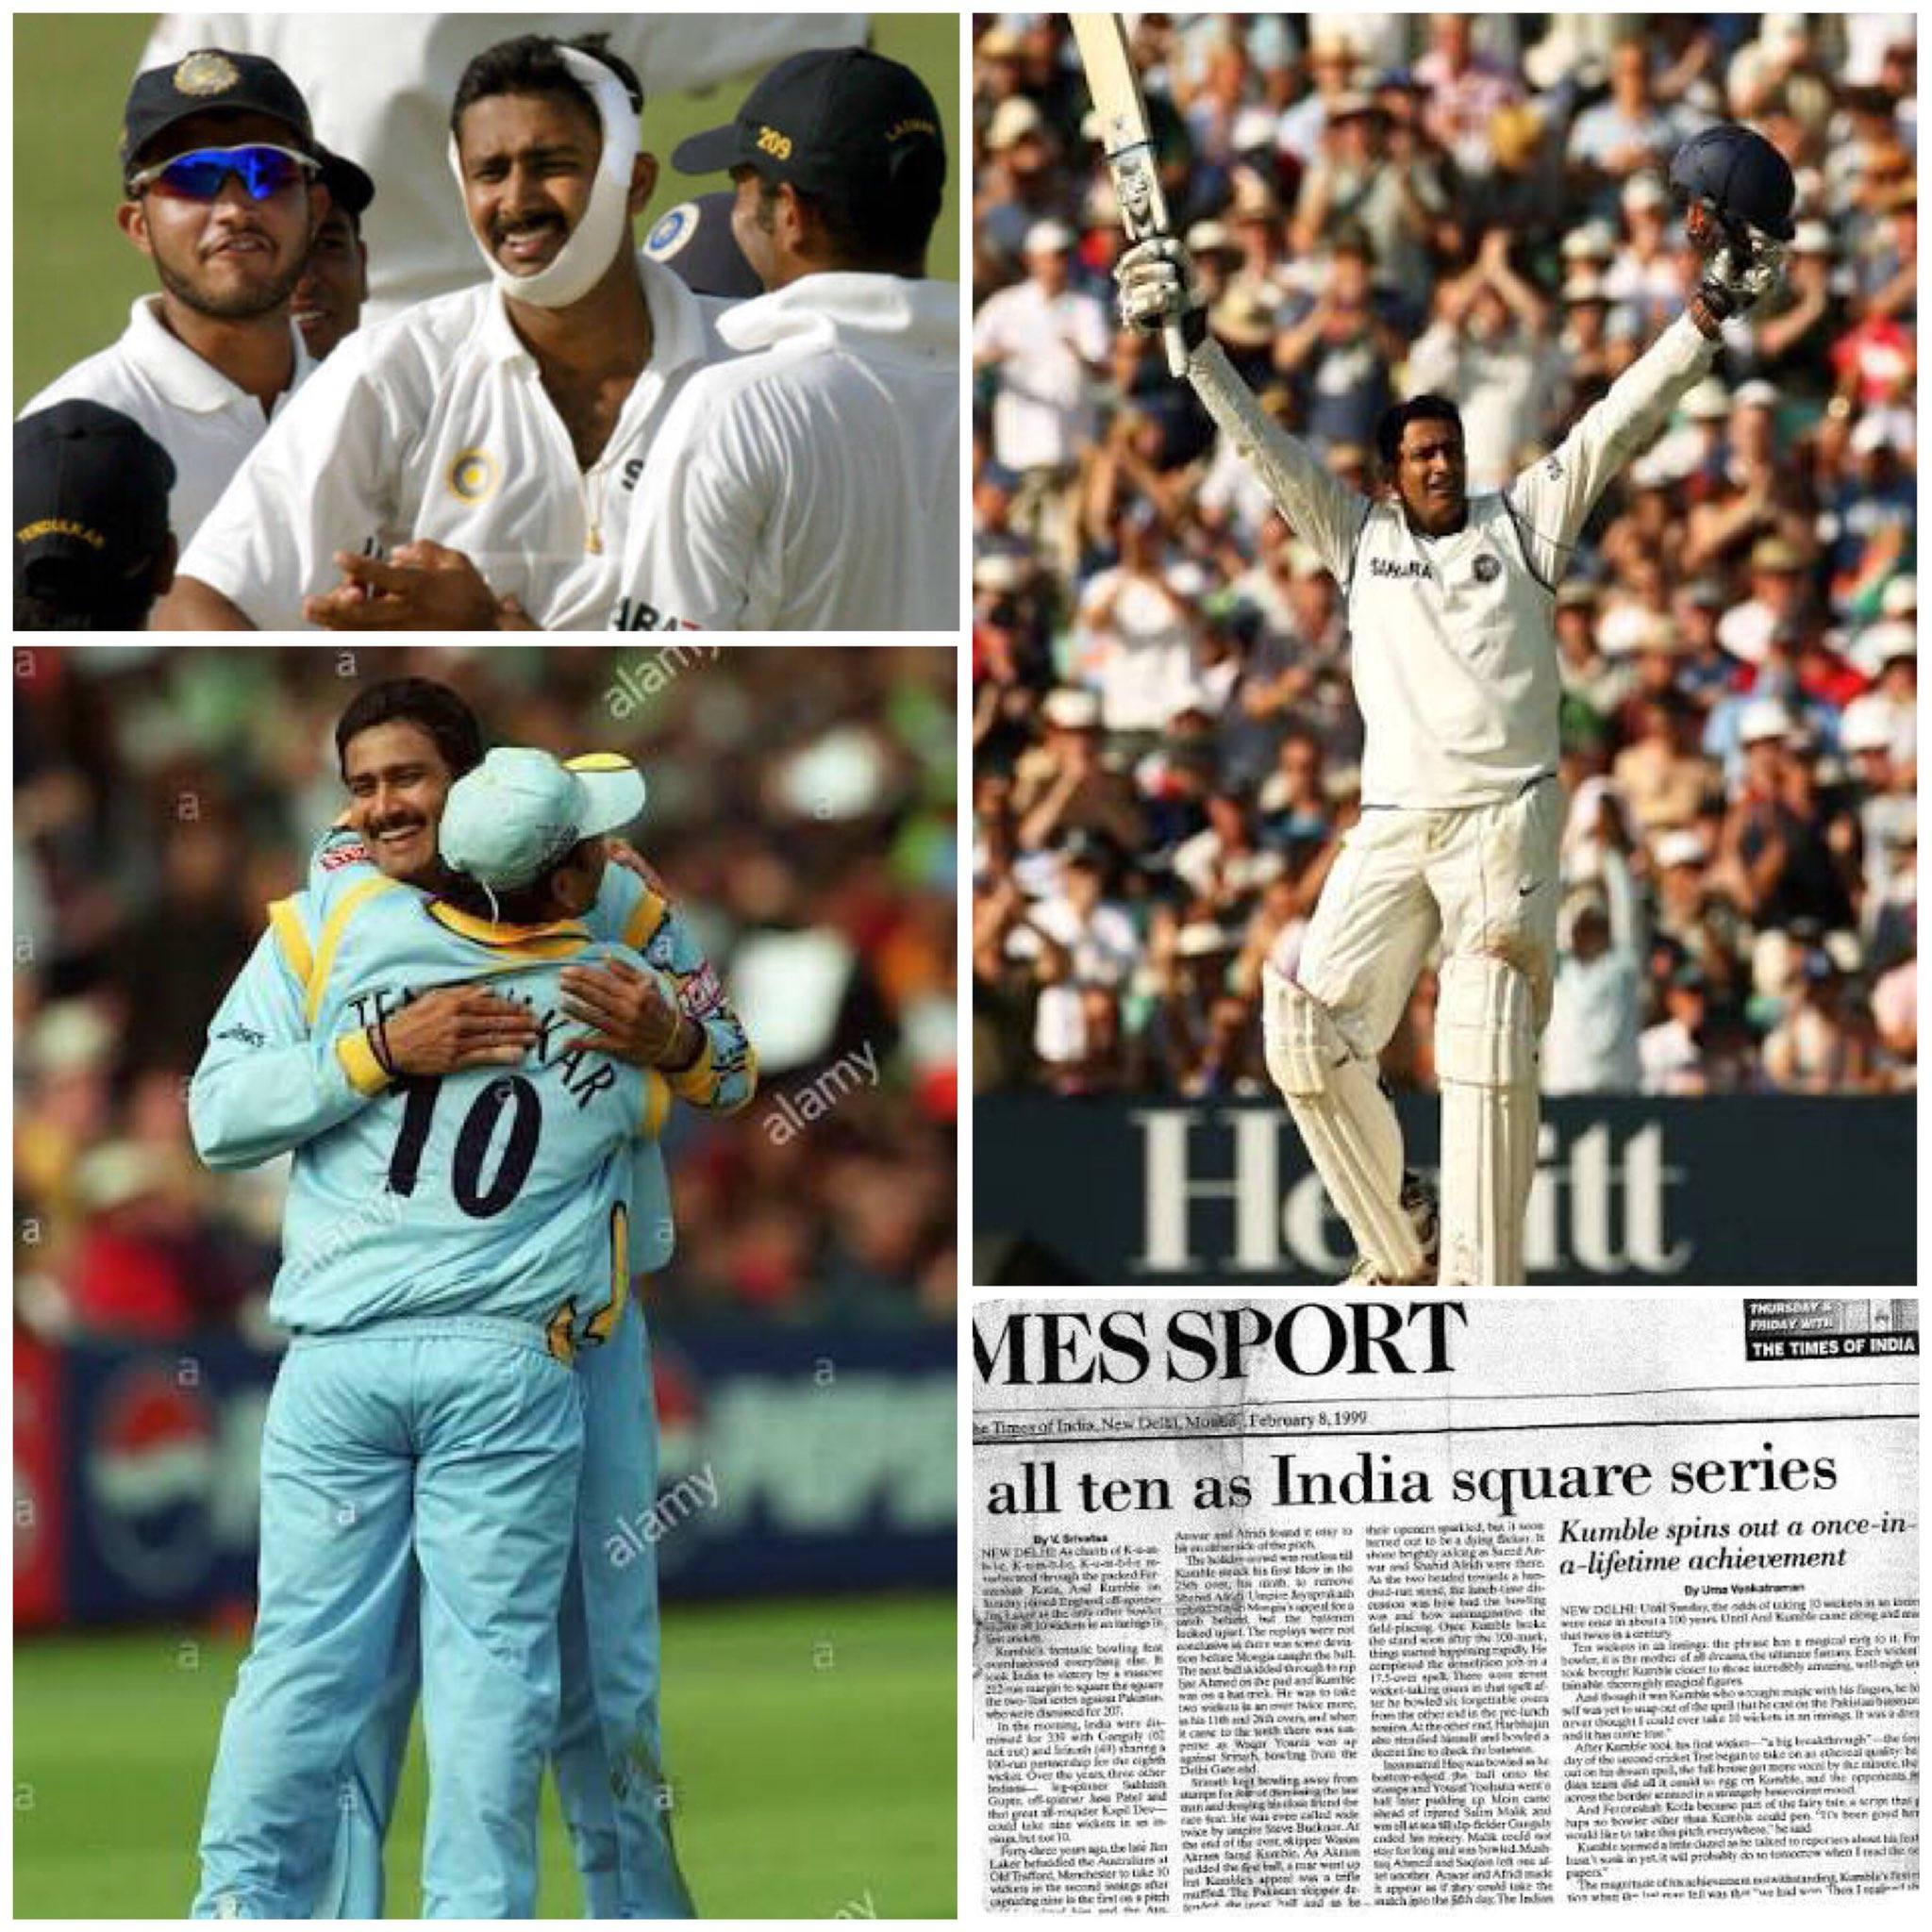 Happy birthday Anil Kumble.we have a huge respect for u. Wishing u a healthy life.